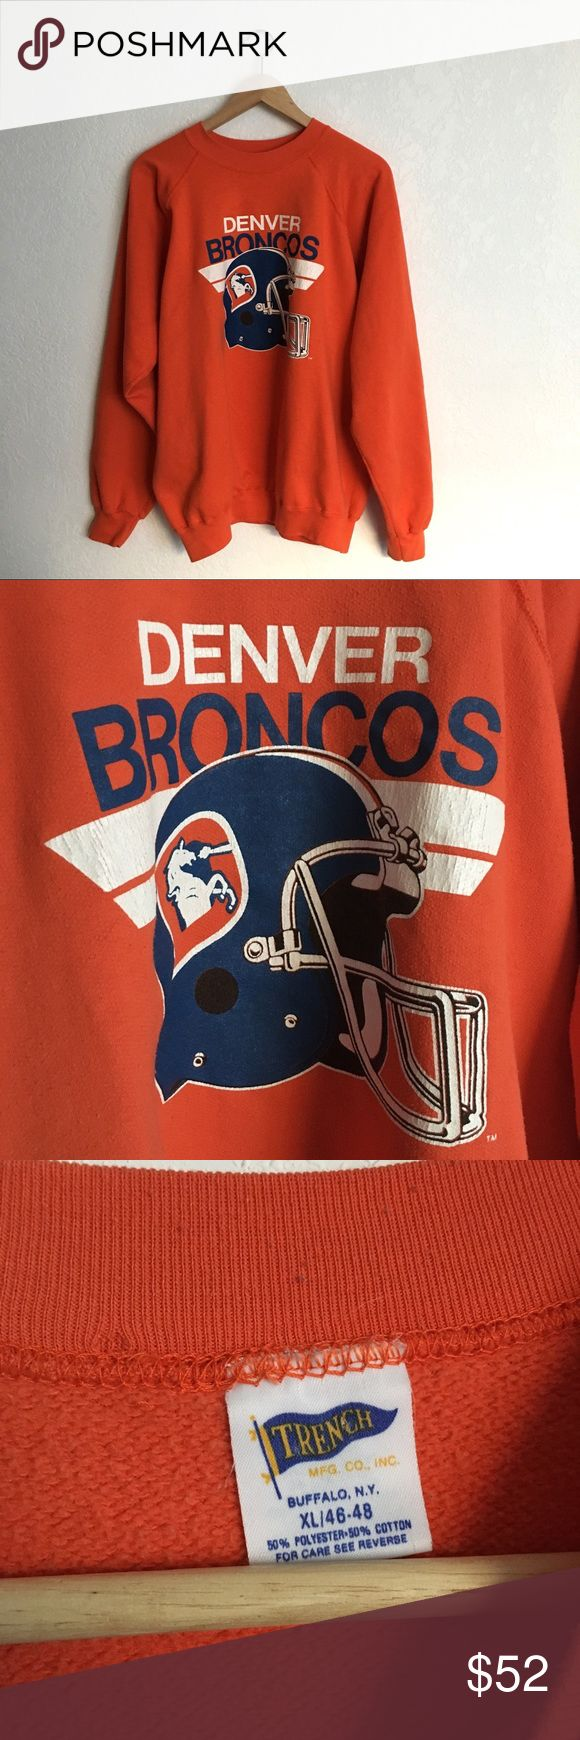 Vintage Denver Broncos Sweatshirt Classic Broncos logo. Tag size XL. Suggested size for ladies XS-M. Vintage Tops Sweatshirts & Hoodies